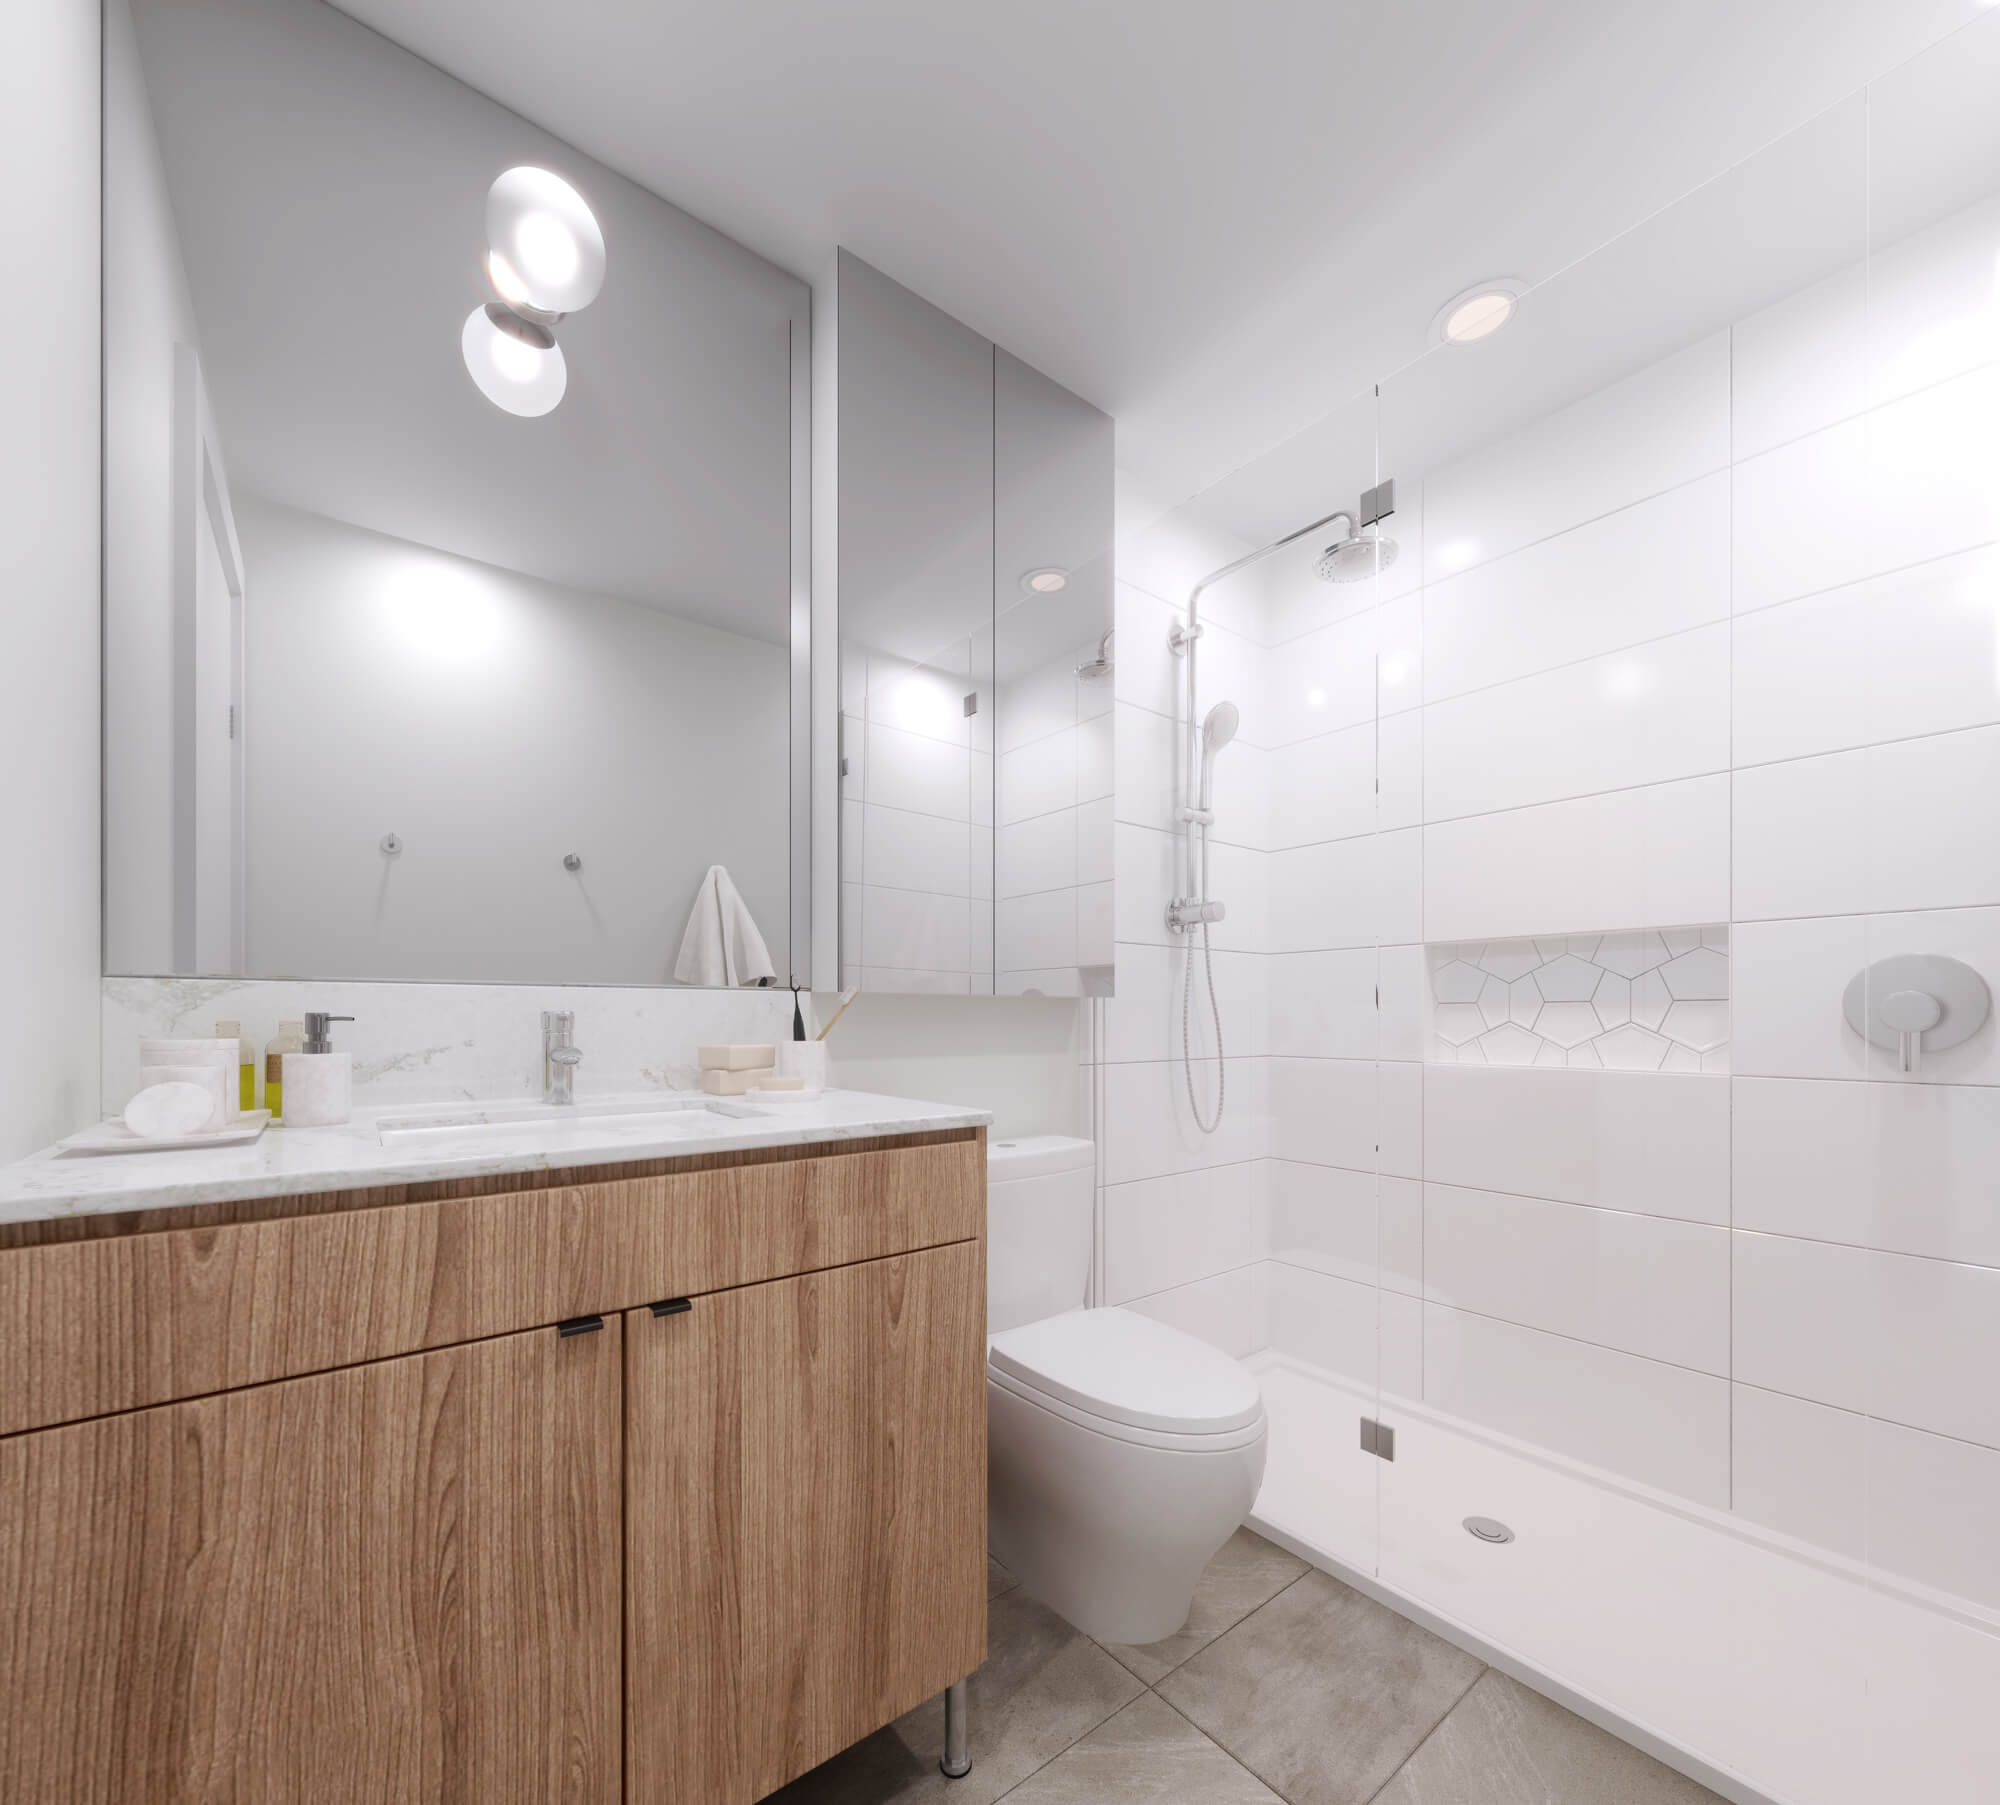 Elevate bathrooms feature Grohe hardware and Toto toilents.